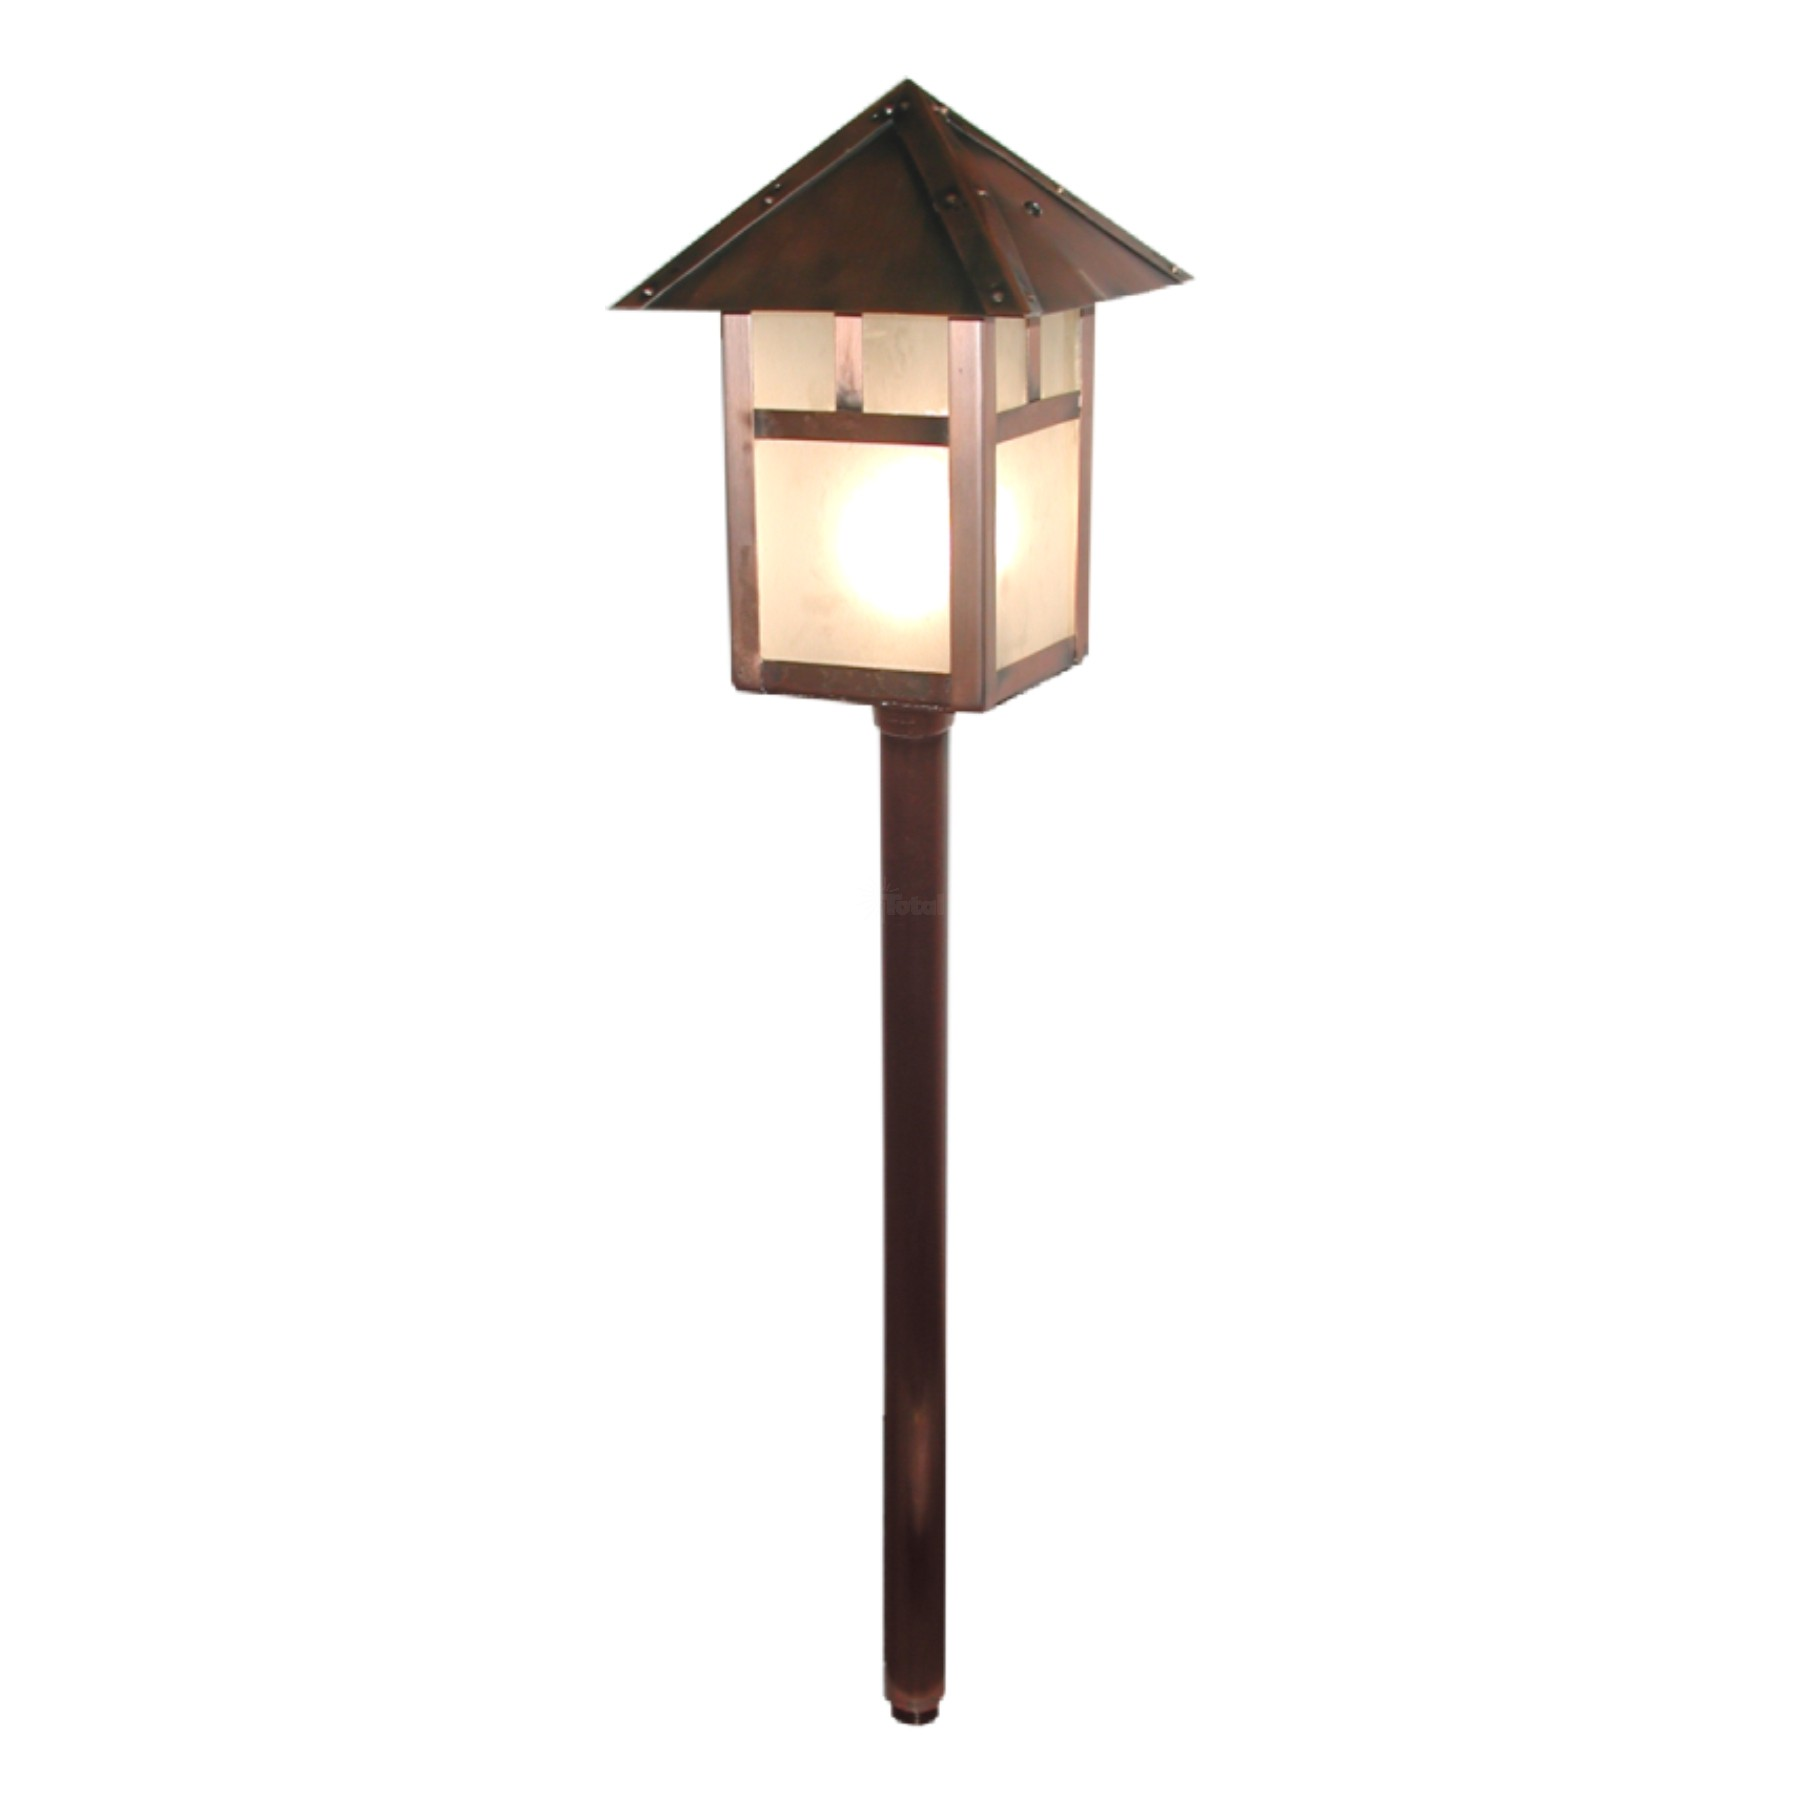 Landscape lighting low voltage lantern path light for Low voltage walkway lighting sets